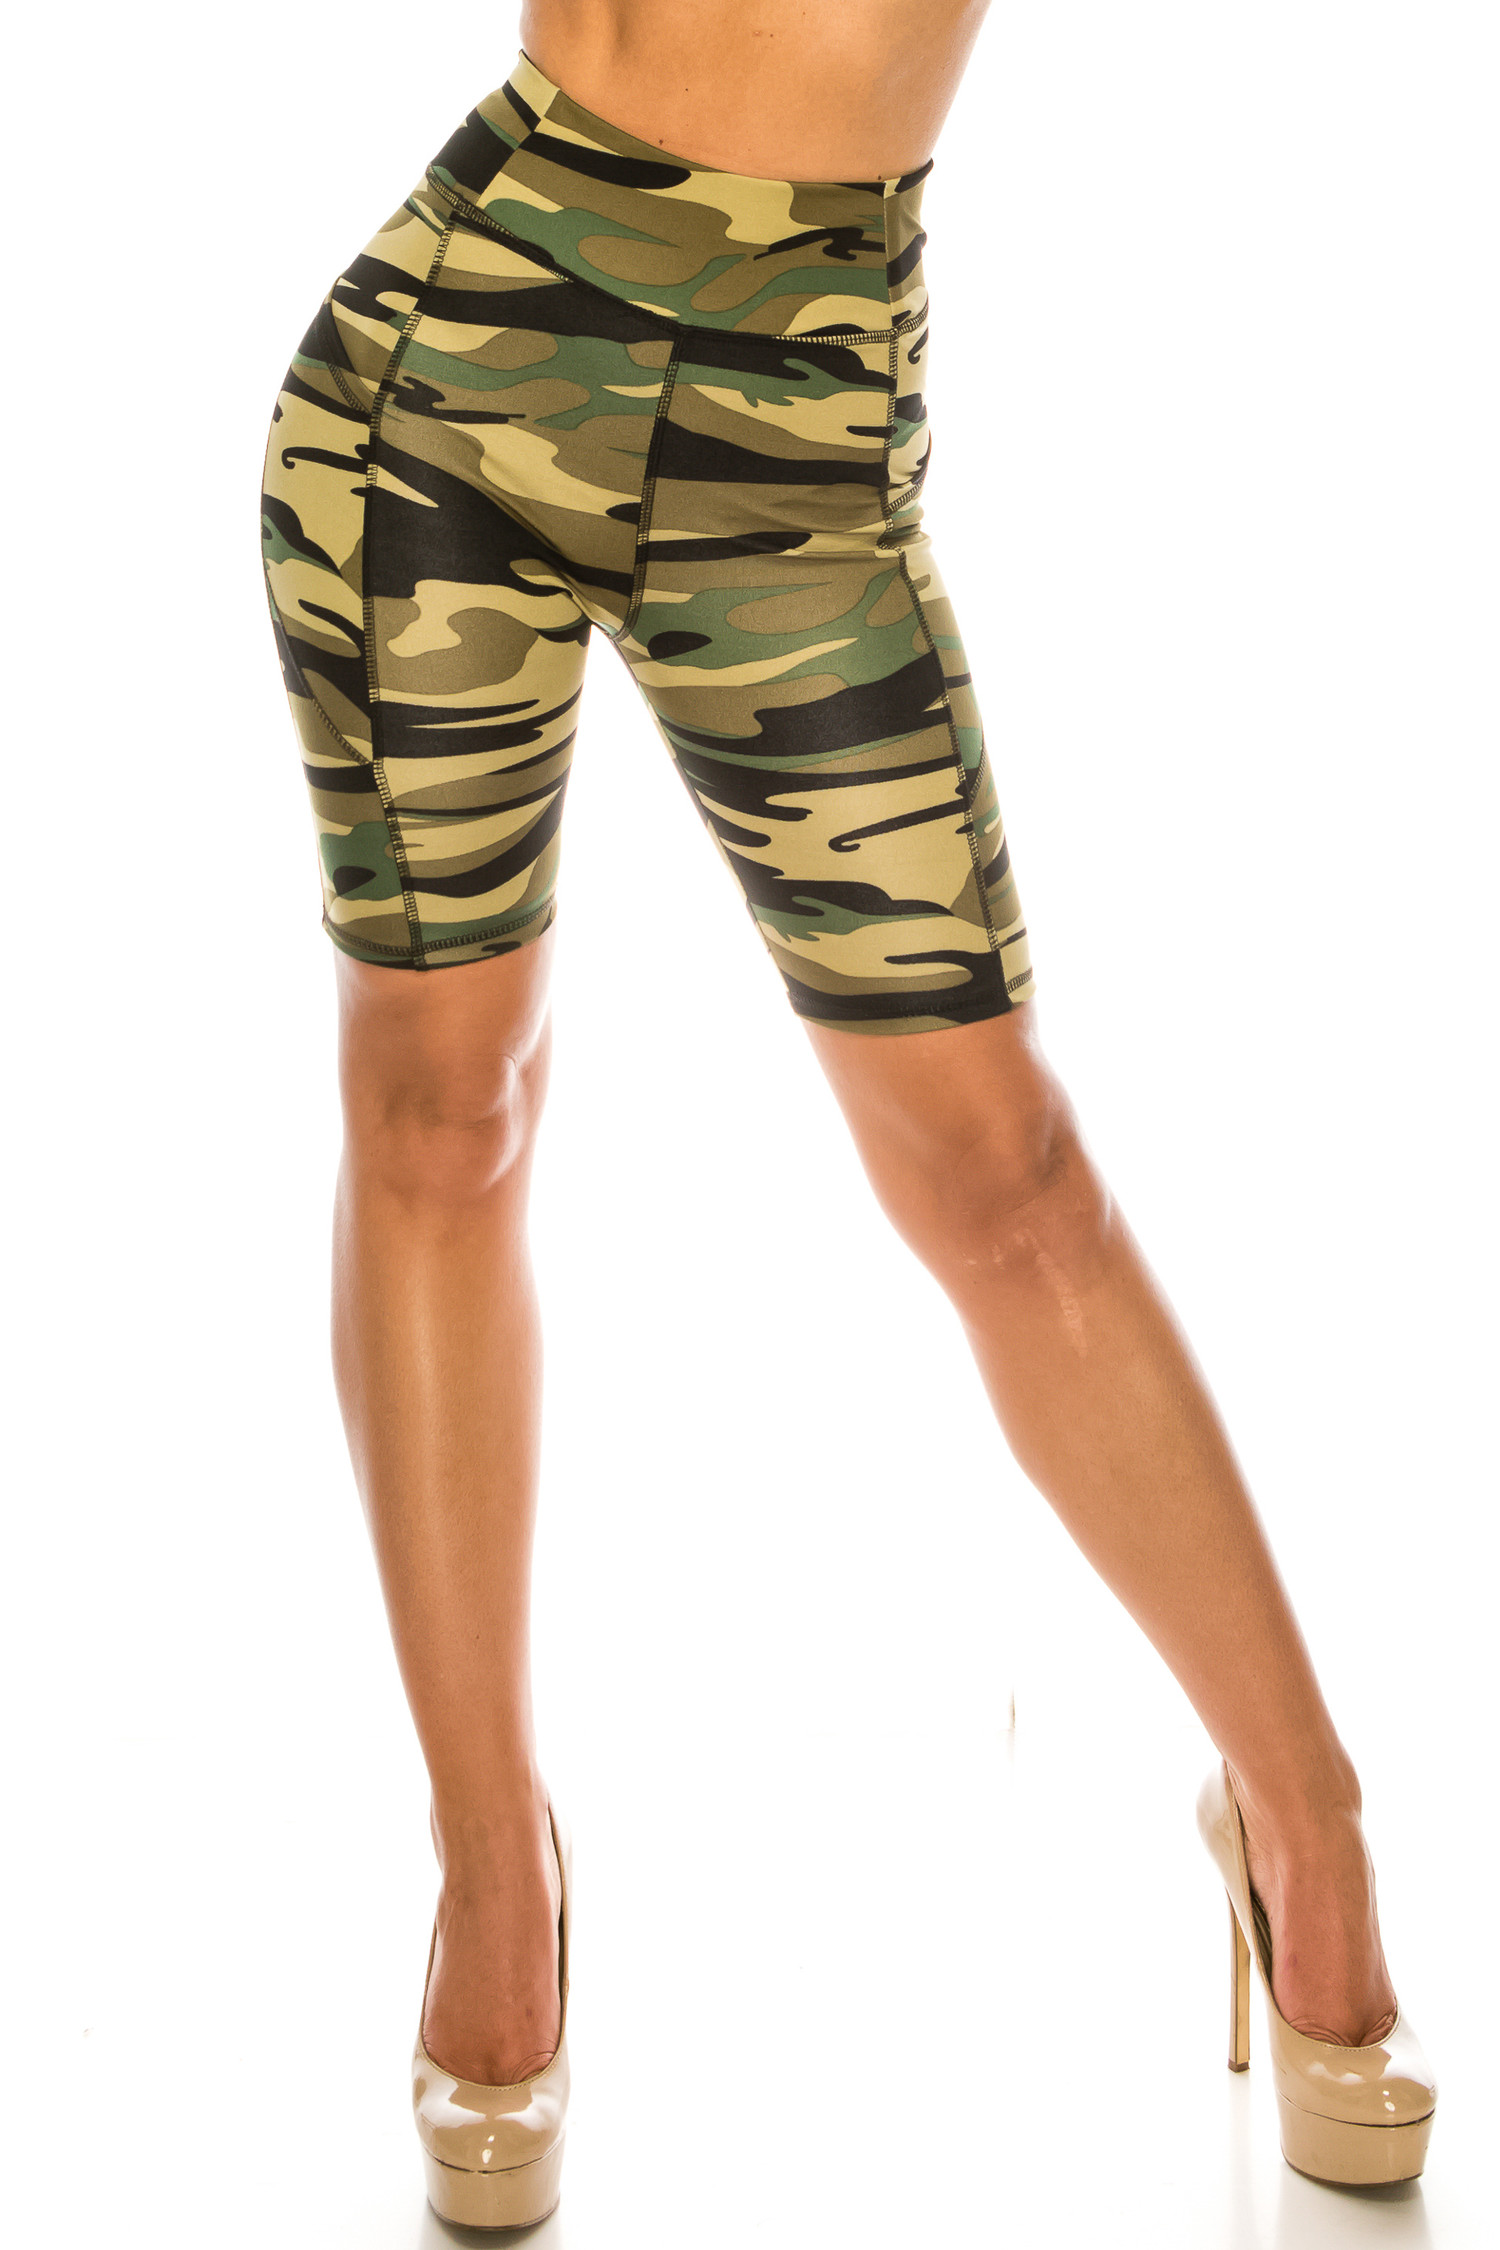 Green Camouflage High Waist Sport Biker Shorts with Pockets